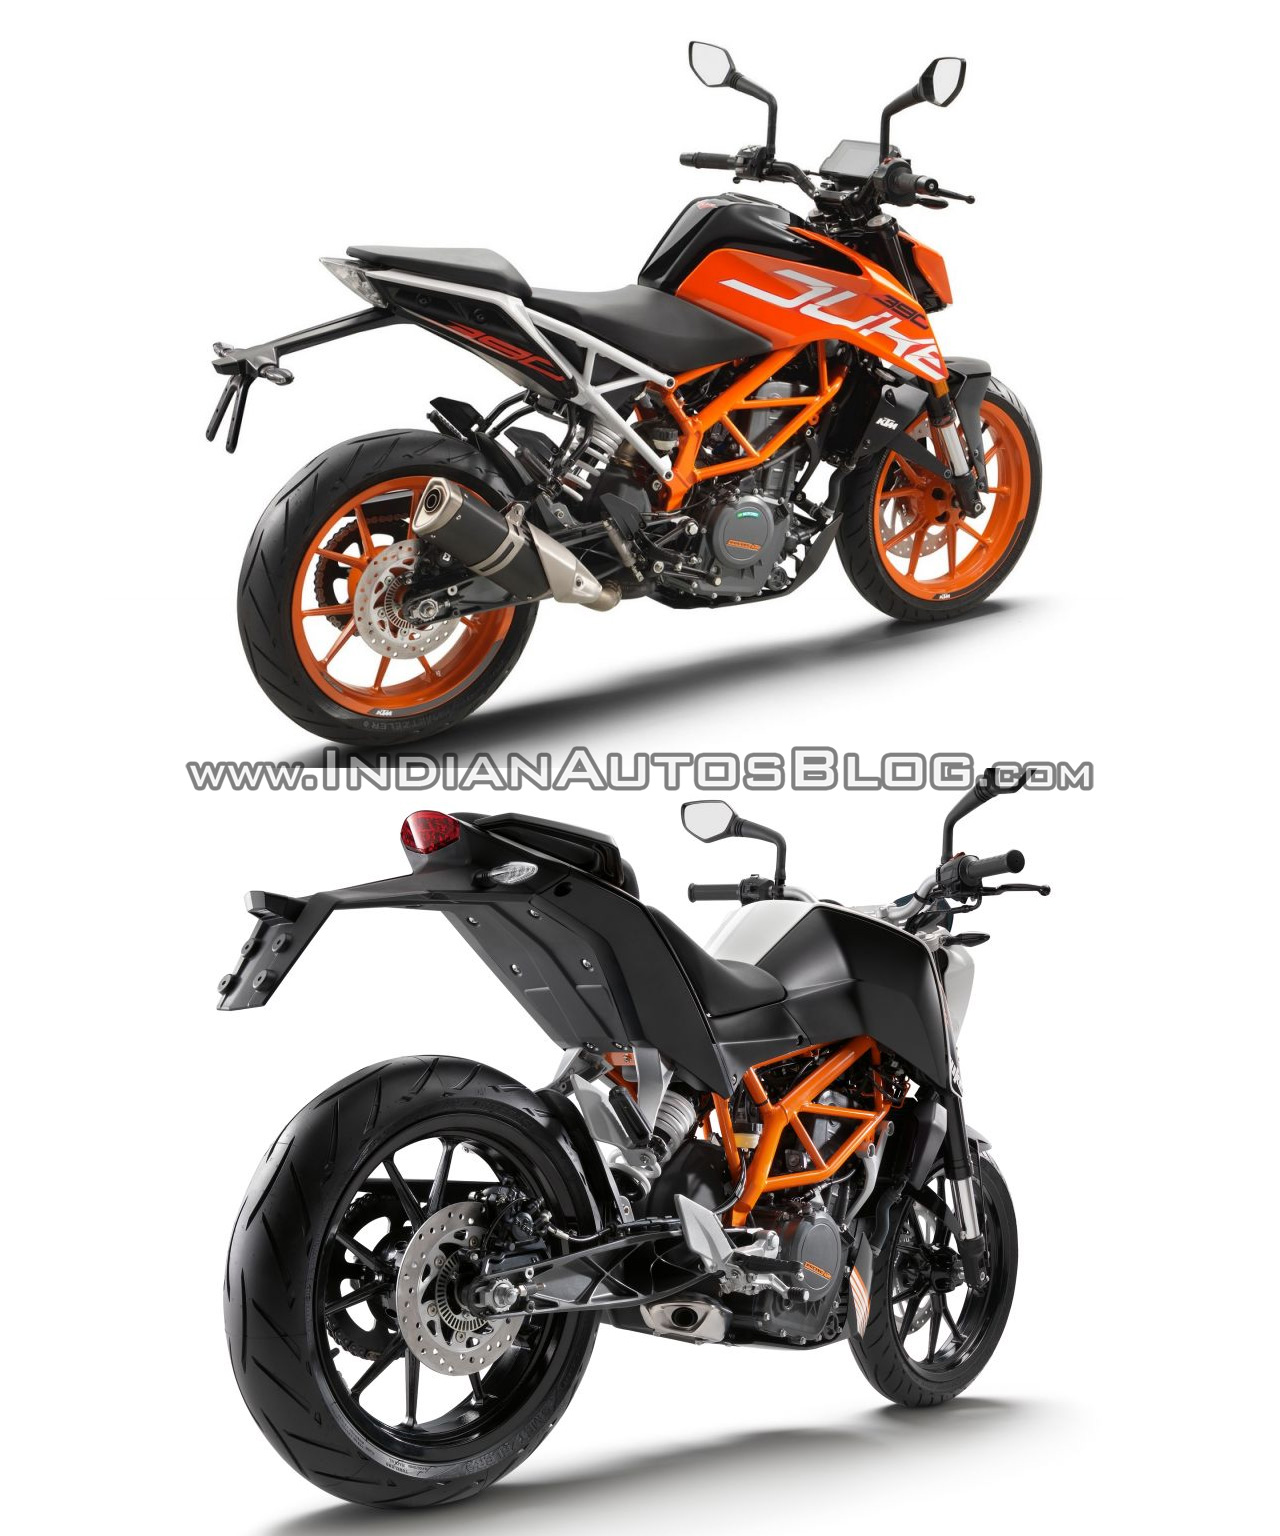 2017 KTM Duke 390 vs. 2013 KTM Duke 390 rear three quarters